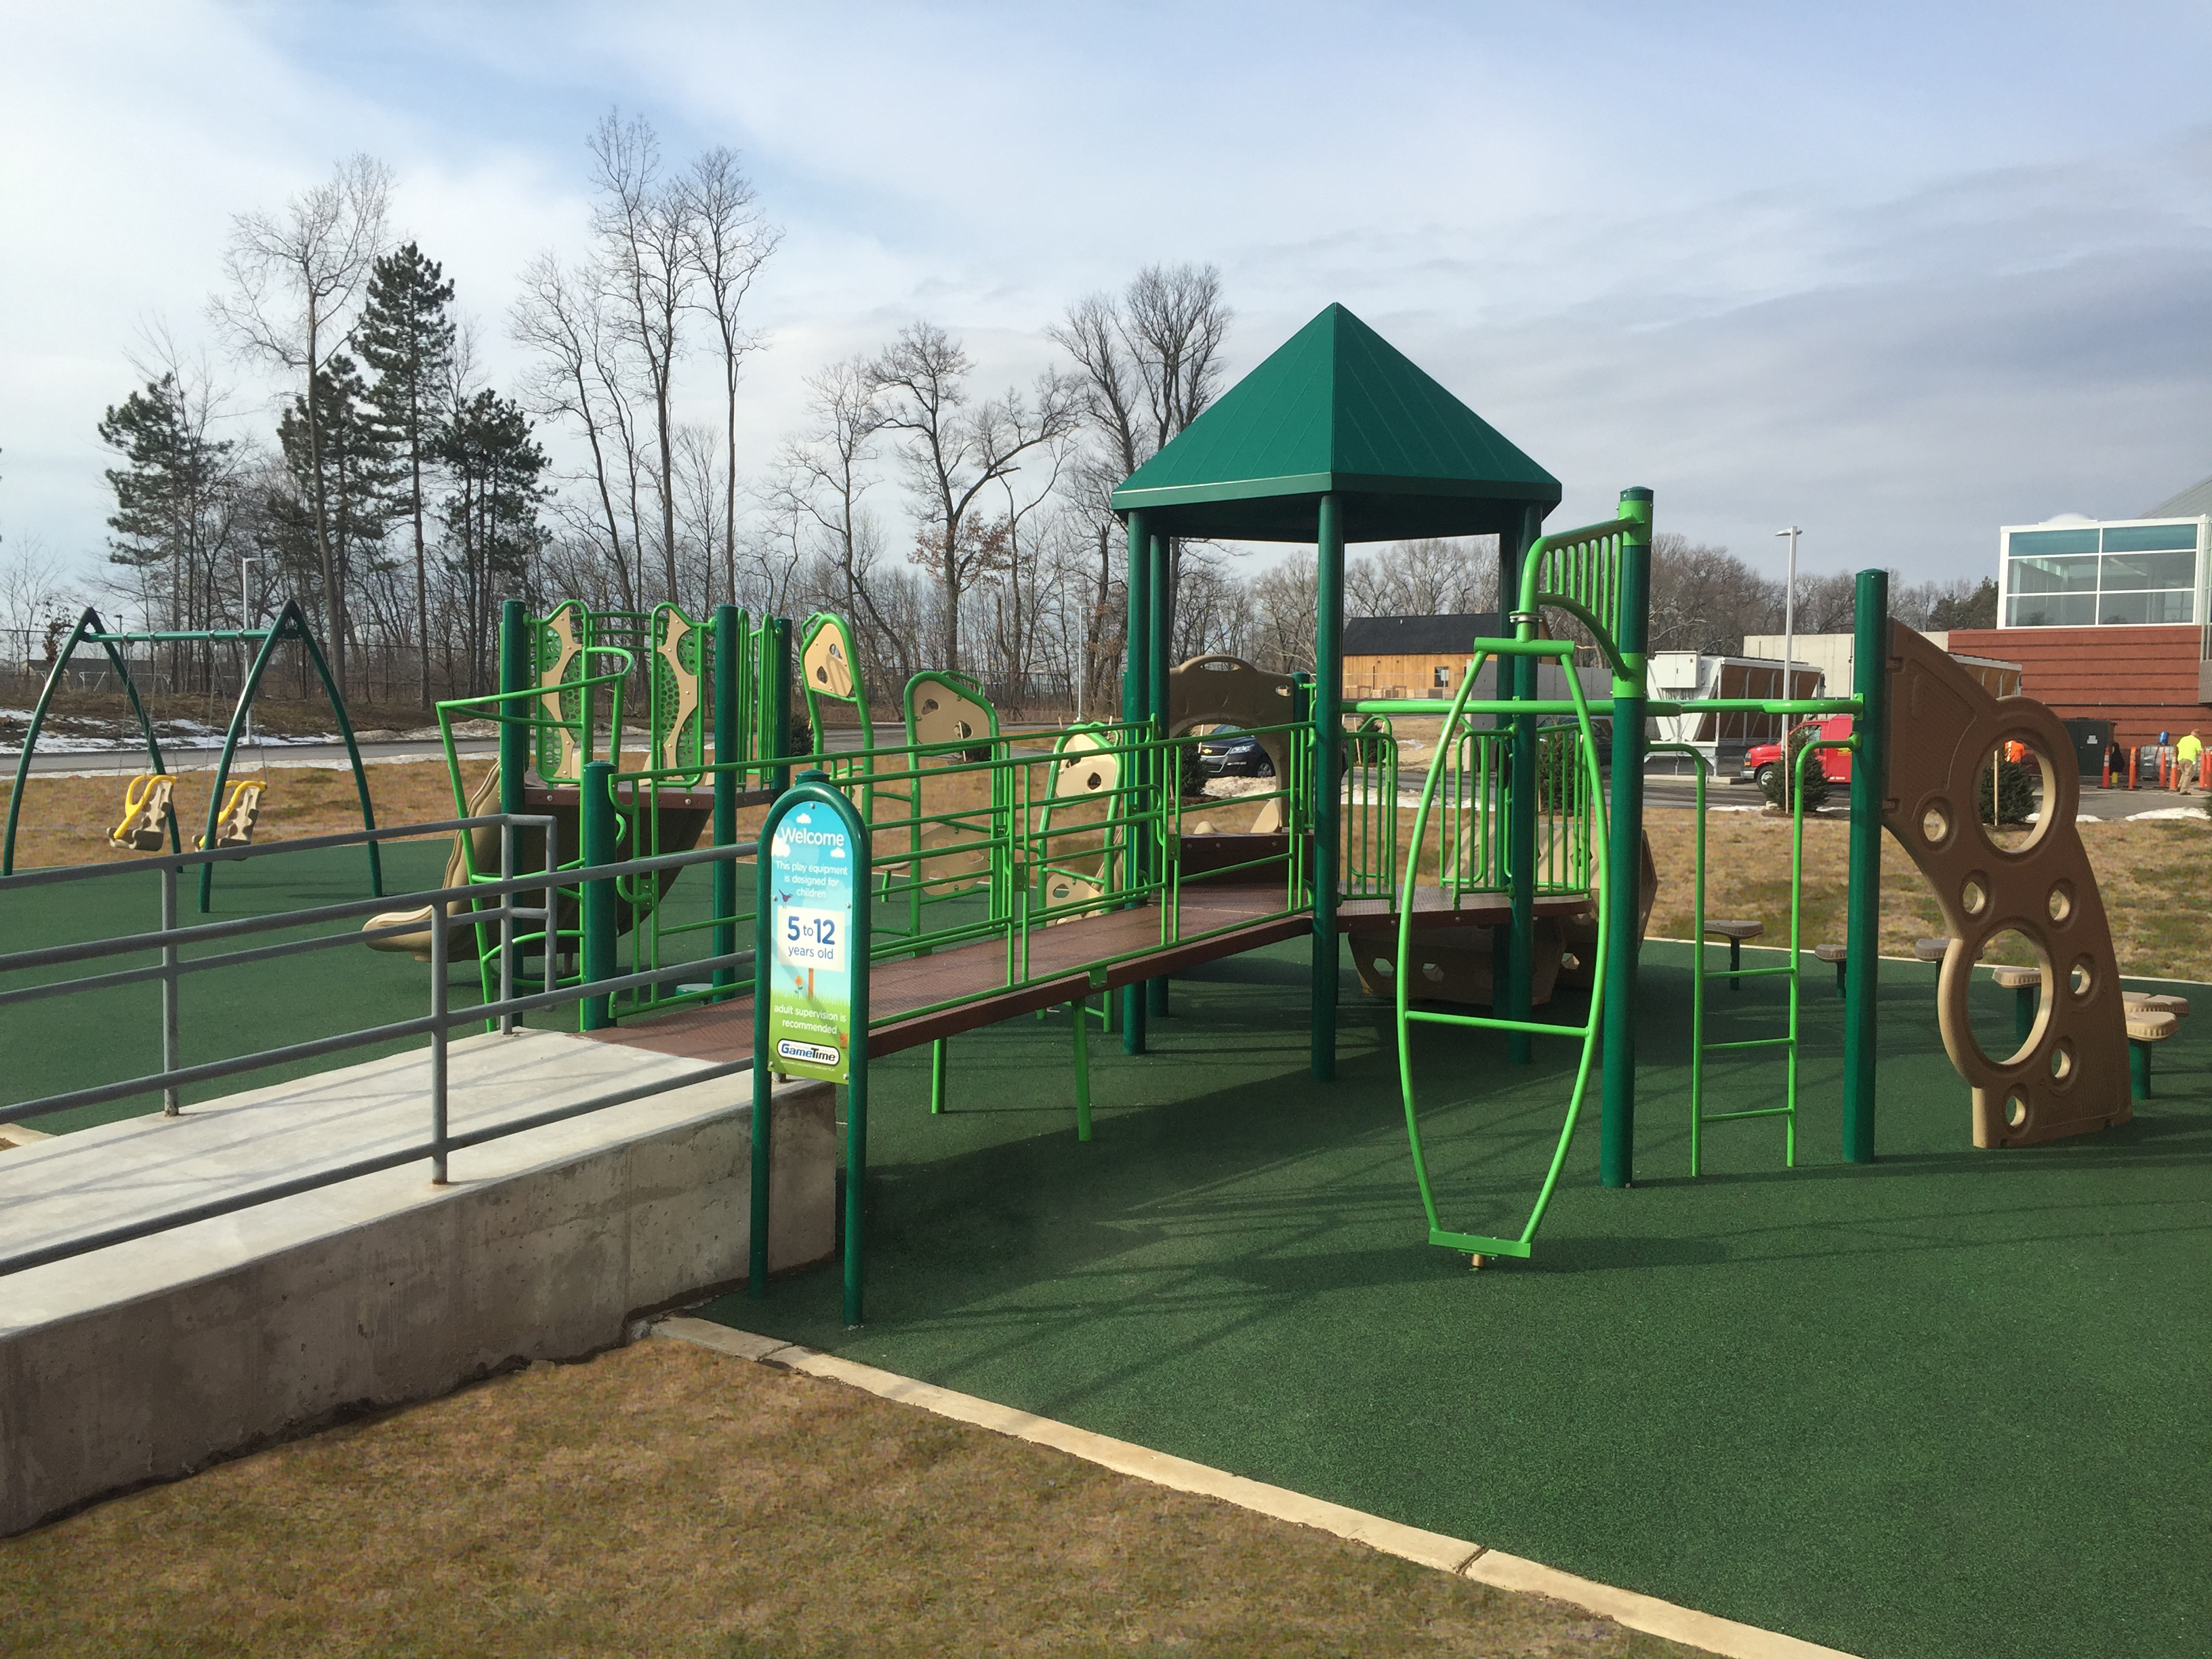 GameTime Playground Part of World's First Global Universal Design Commission (GUDC) Certification